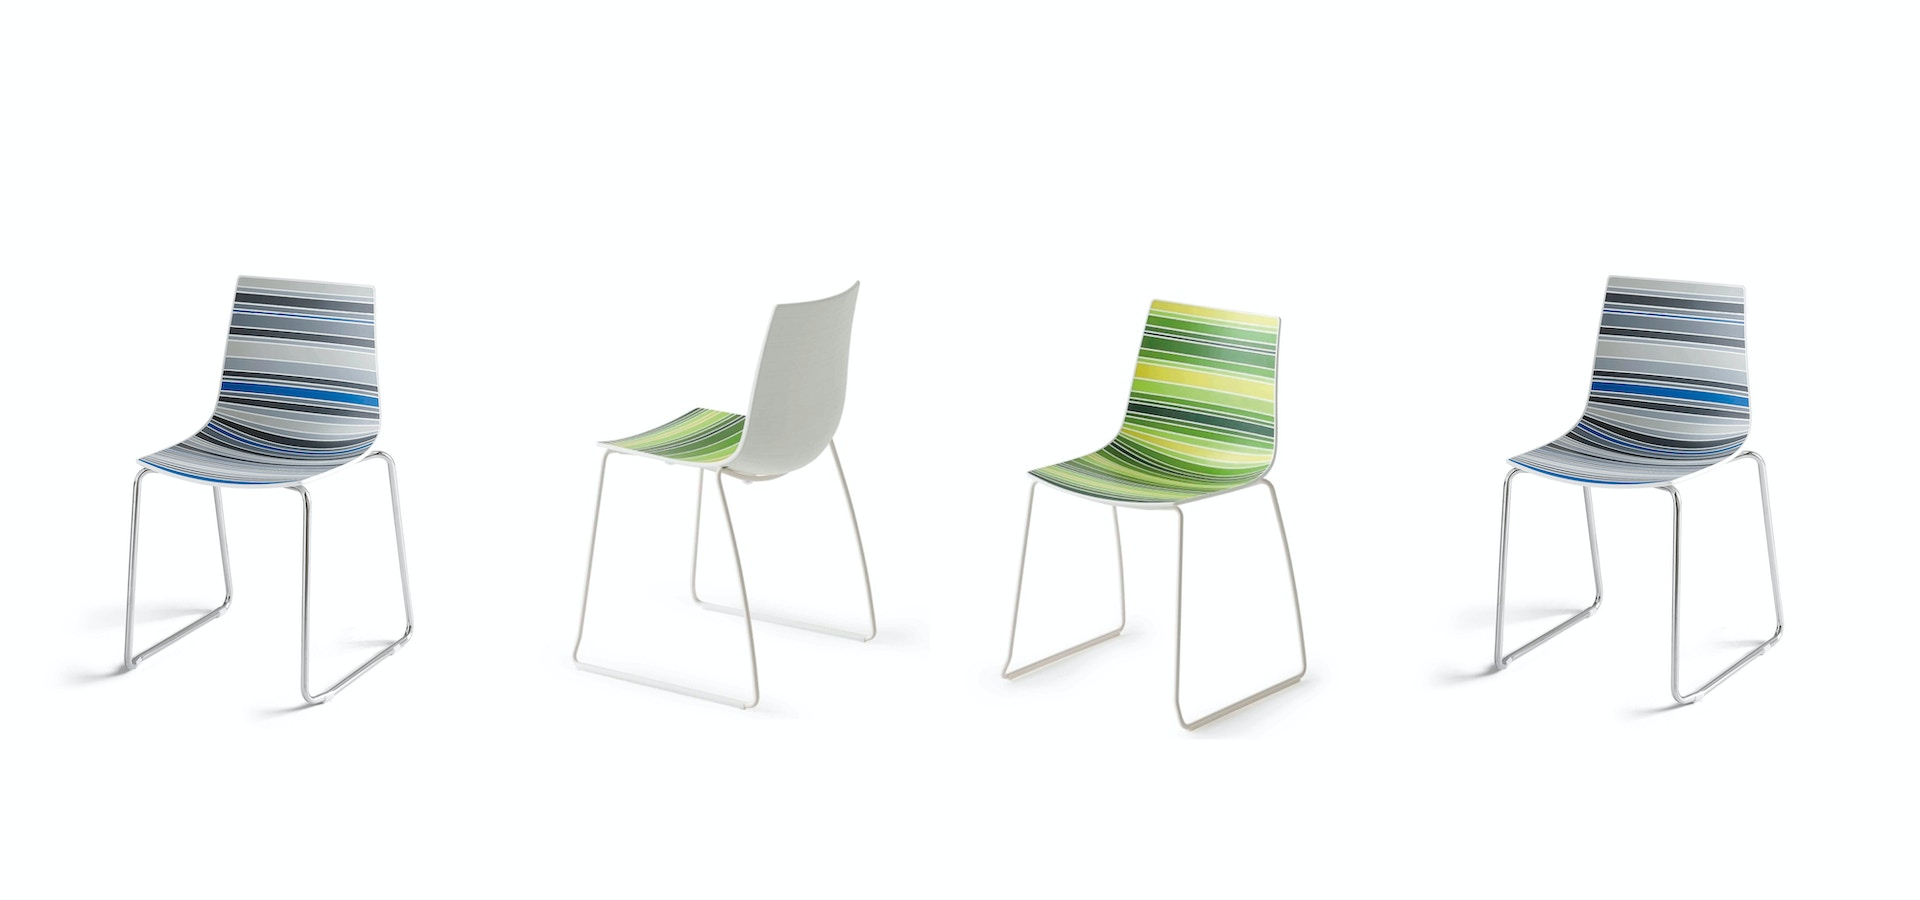 Chairs Stosa - Model Colorfive St 10070